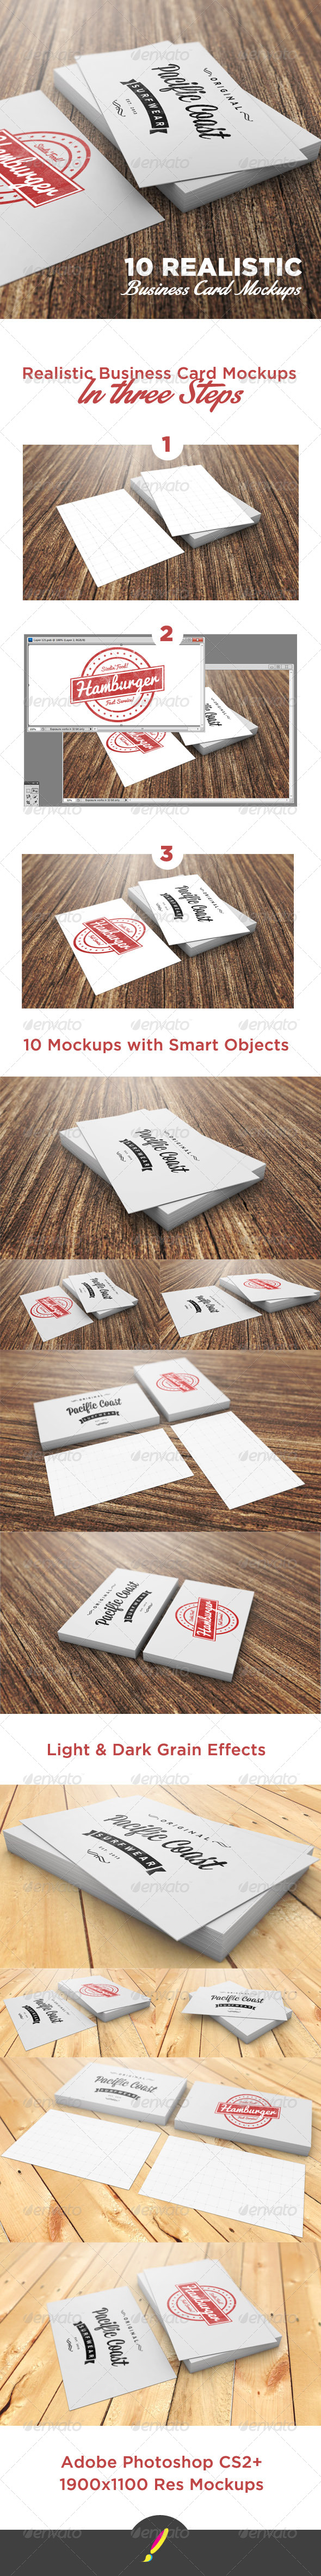 10 Photorealistic Business Card Mockups - Business Cards Print